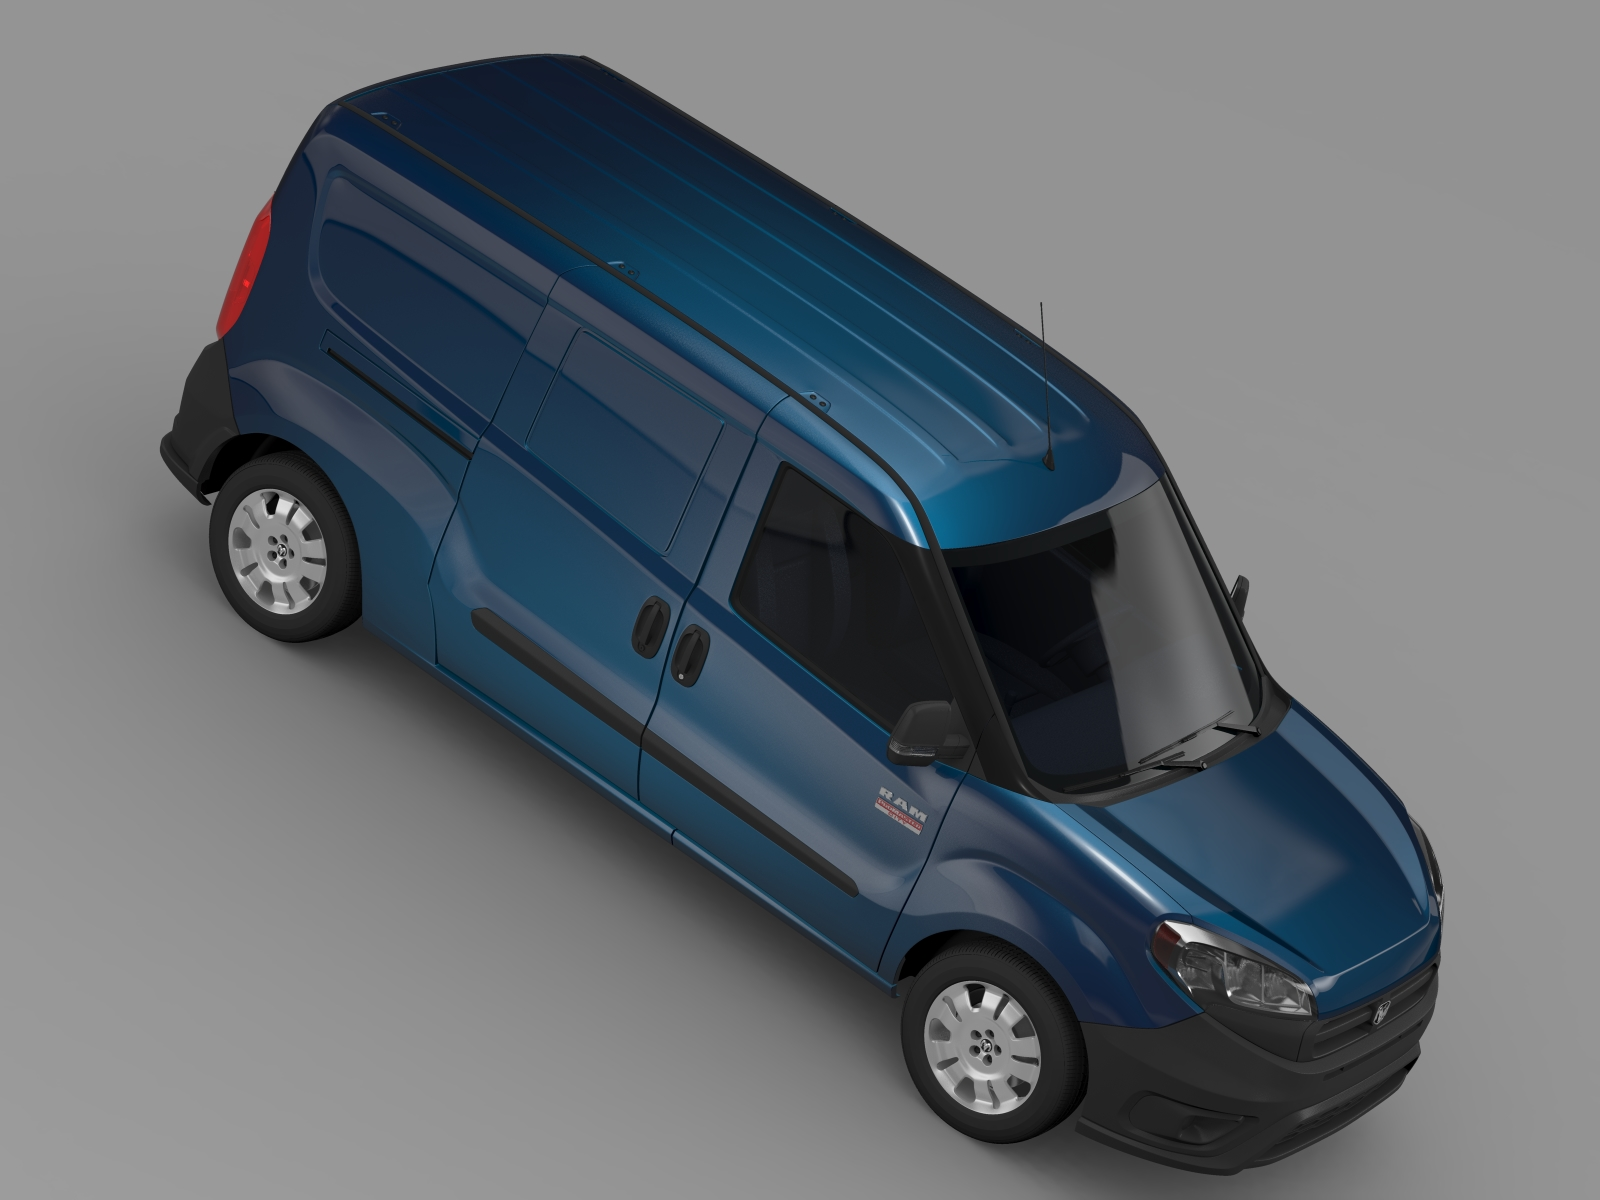 ram promaster city tradesman cargo van 2015 3d model buy ram promaster city tradesman cargo. Black Bedroom Furniture Sets. Home Design Ideas